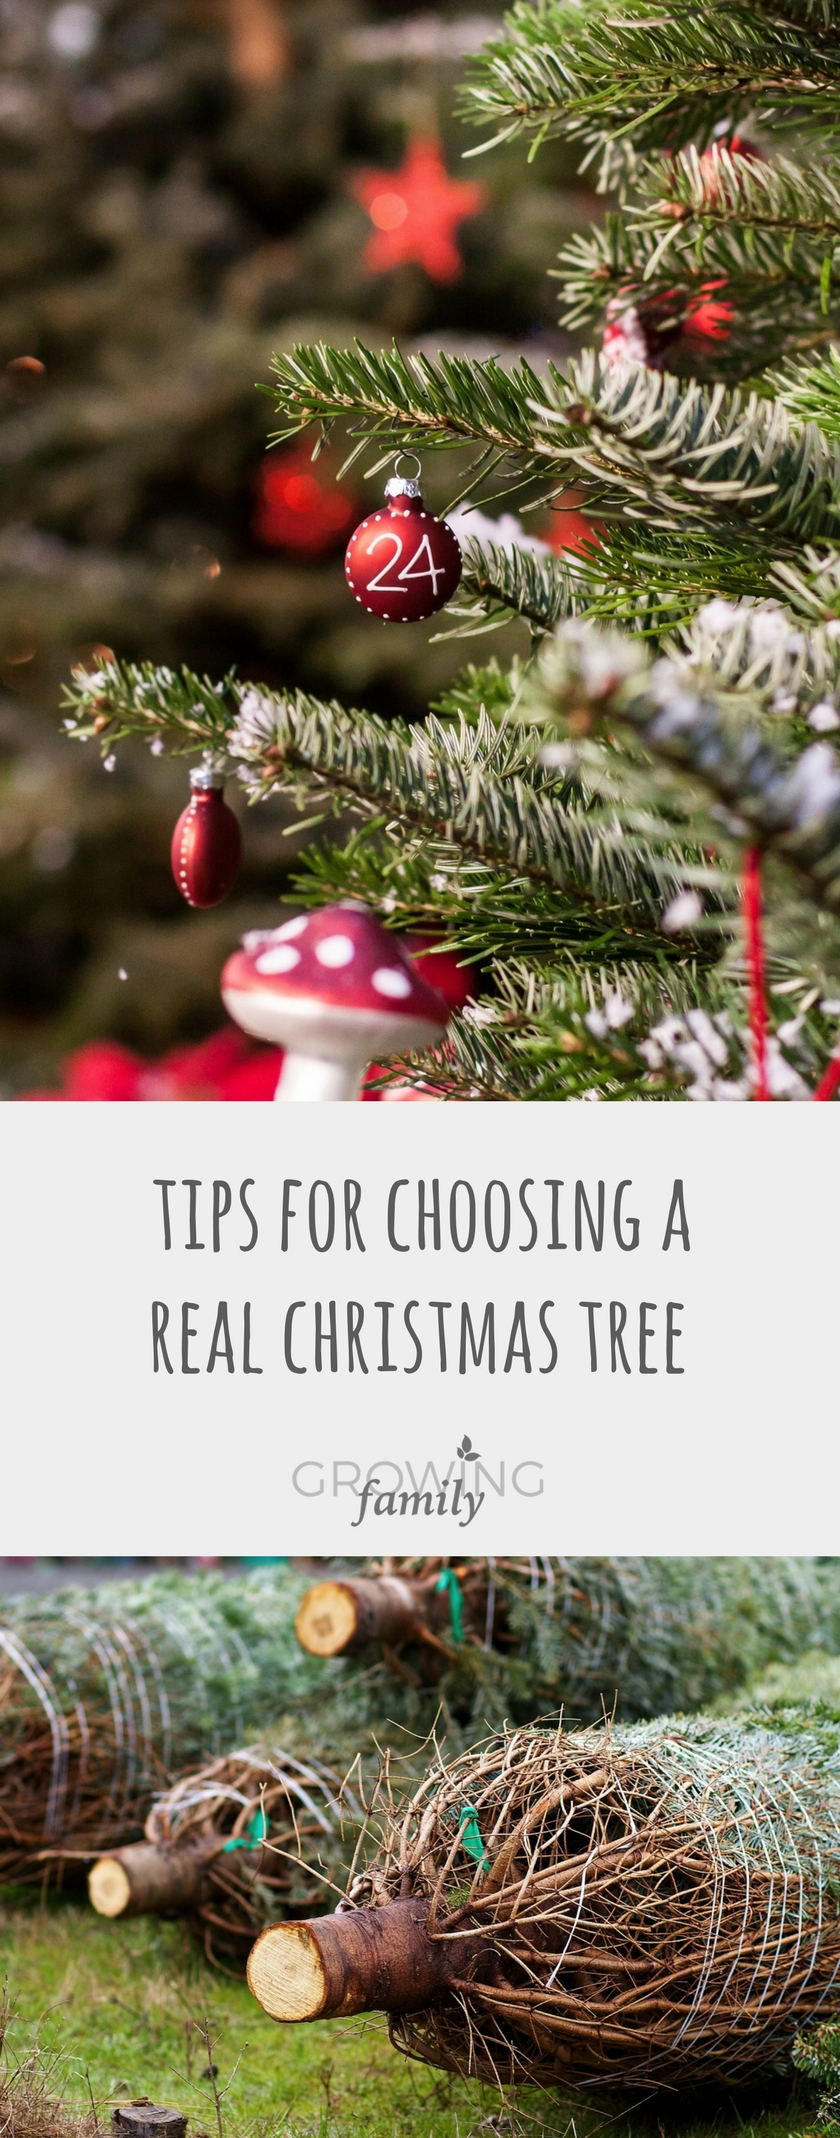 Tips for choosing a real Christmas tree - Growing Family